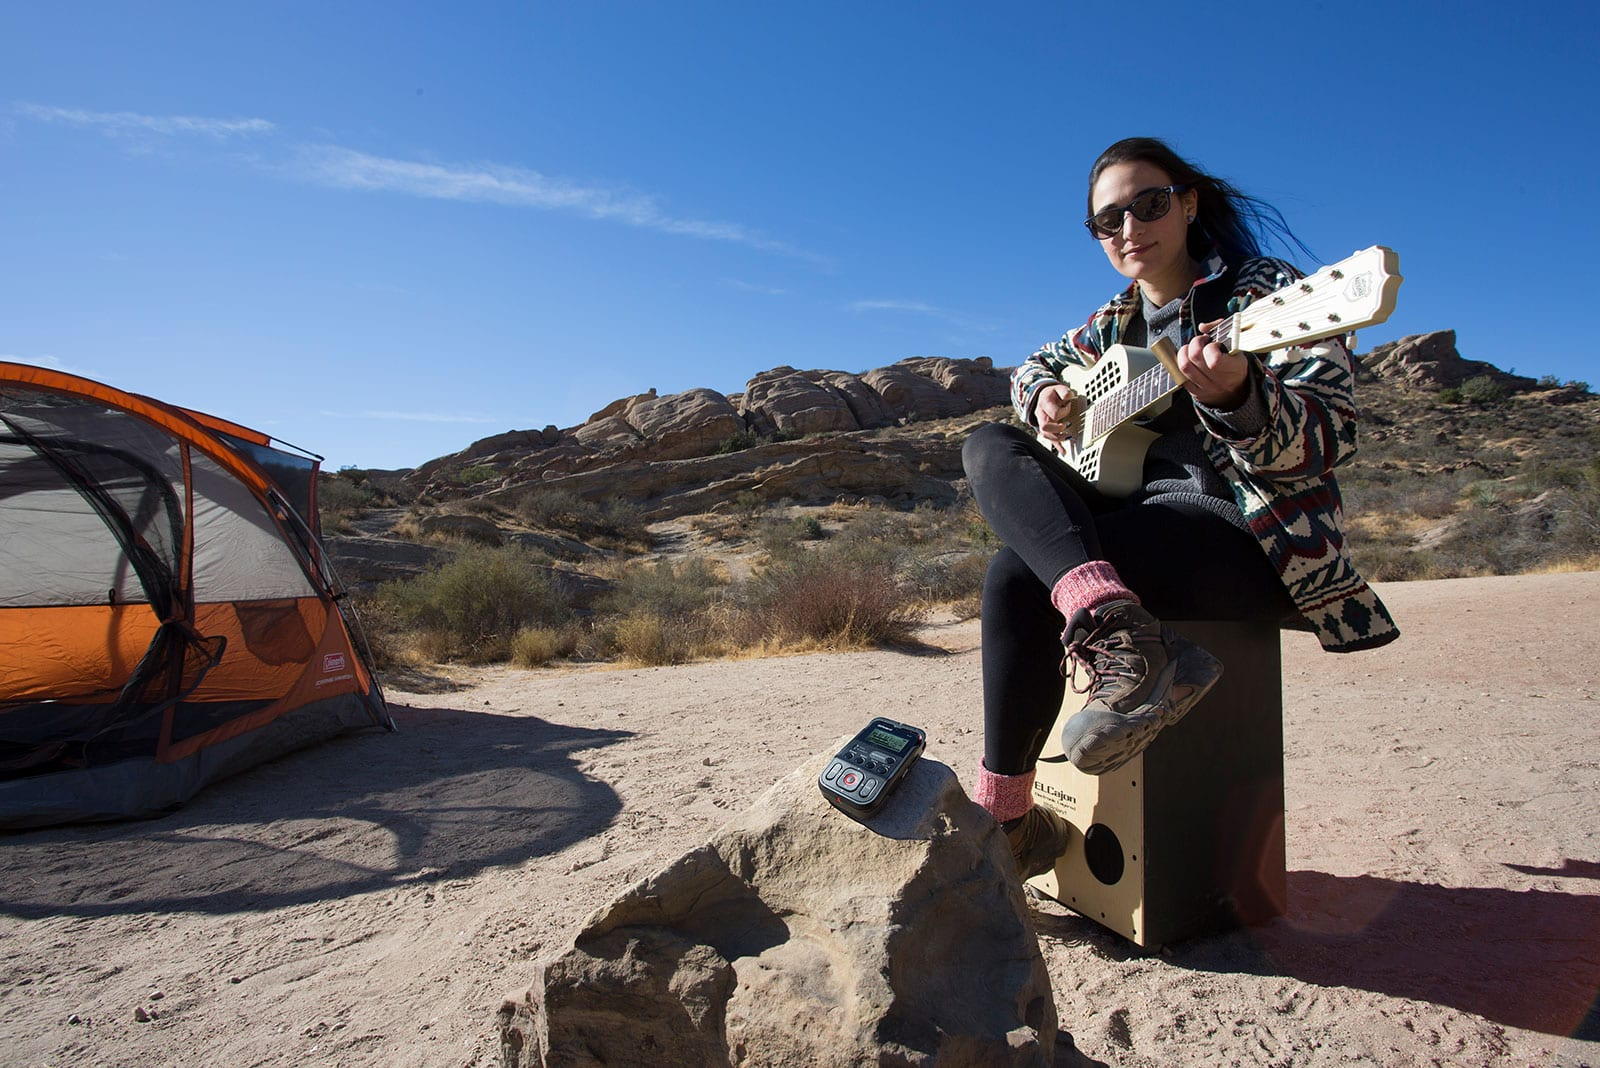 Who doesn't like to record while sitting on a cajón in the dessert?